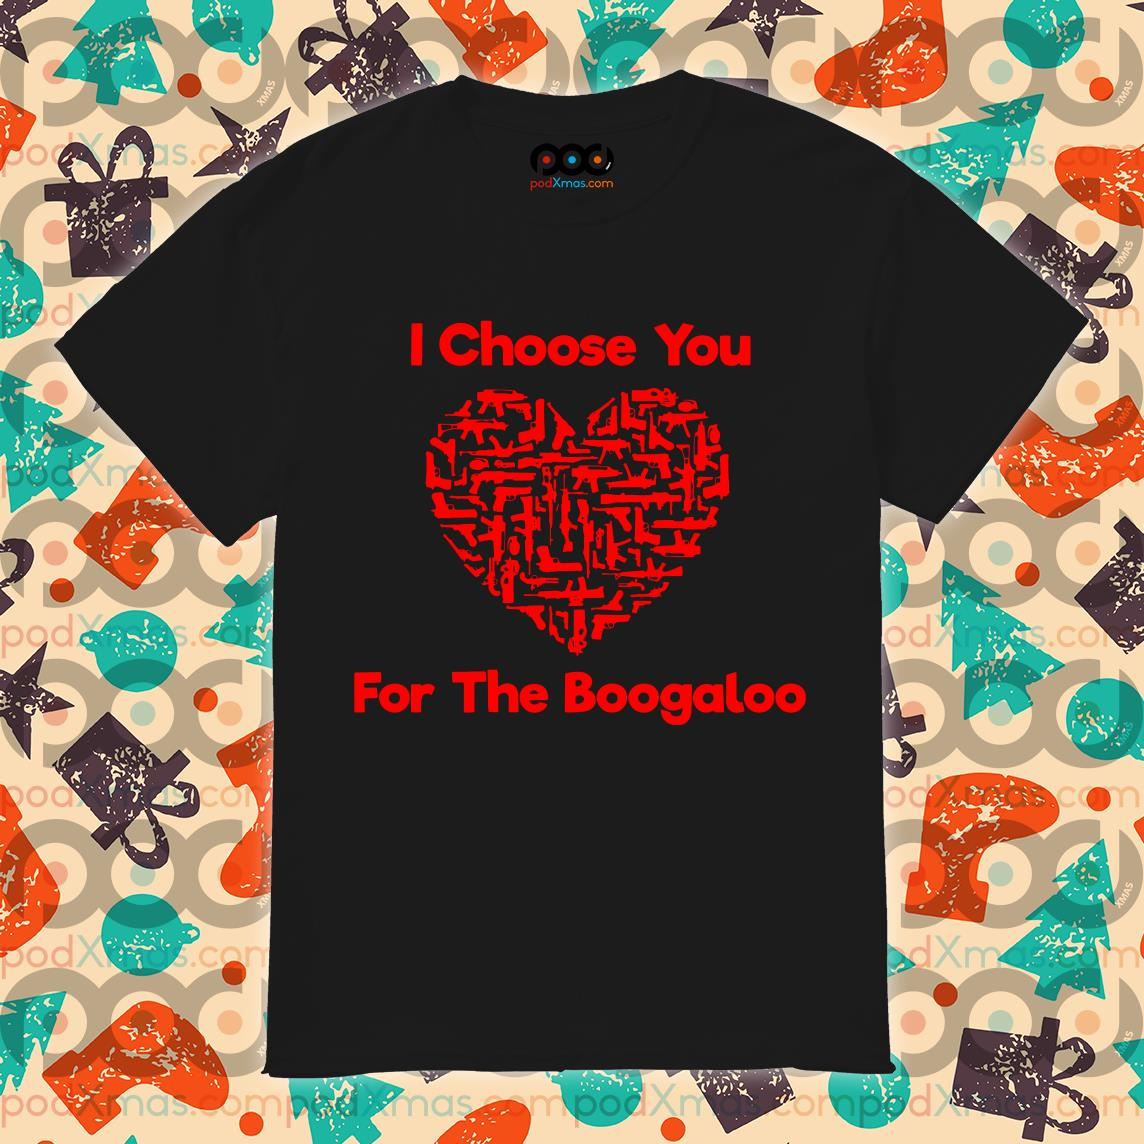 I choose for the Boogaloo shirt